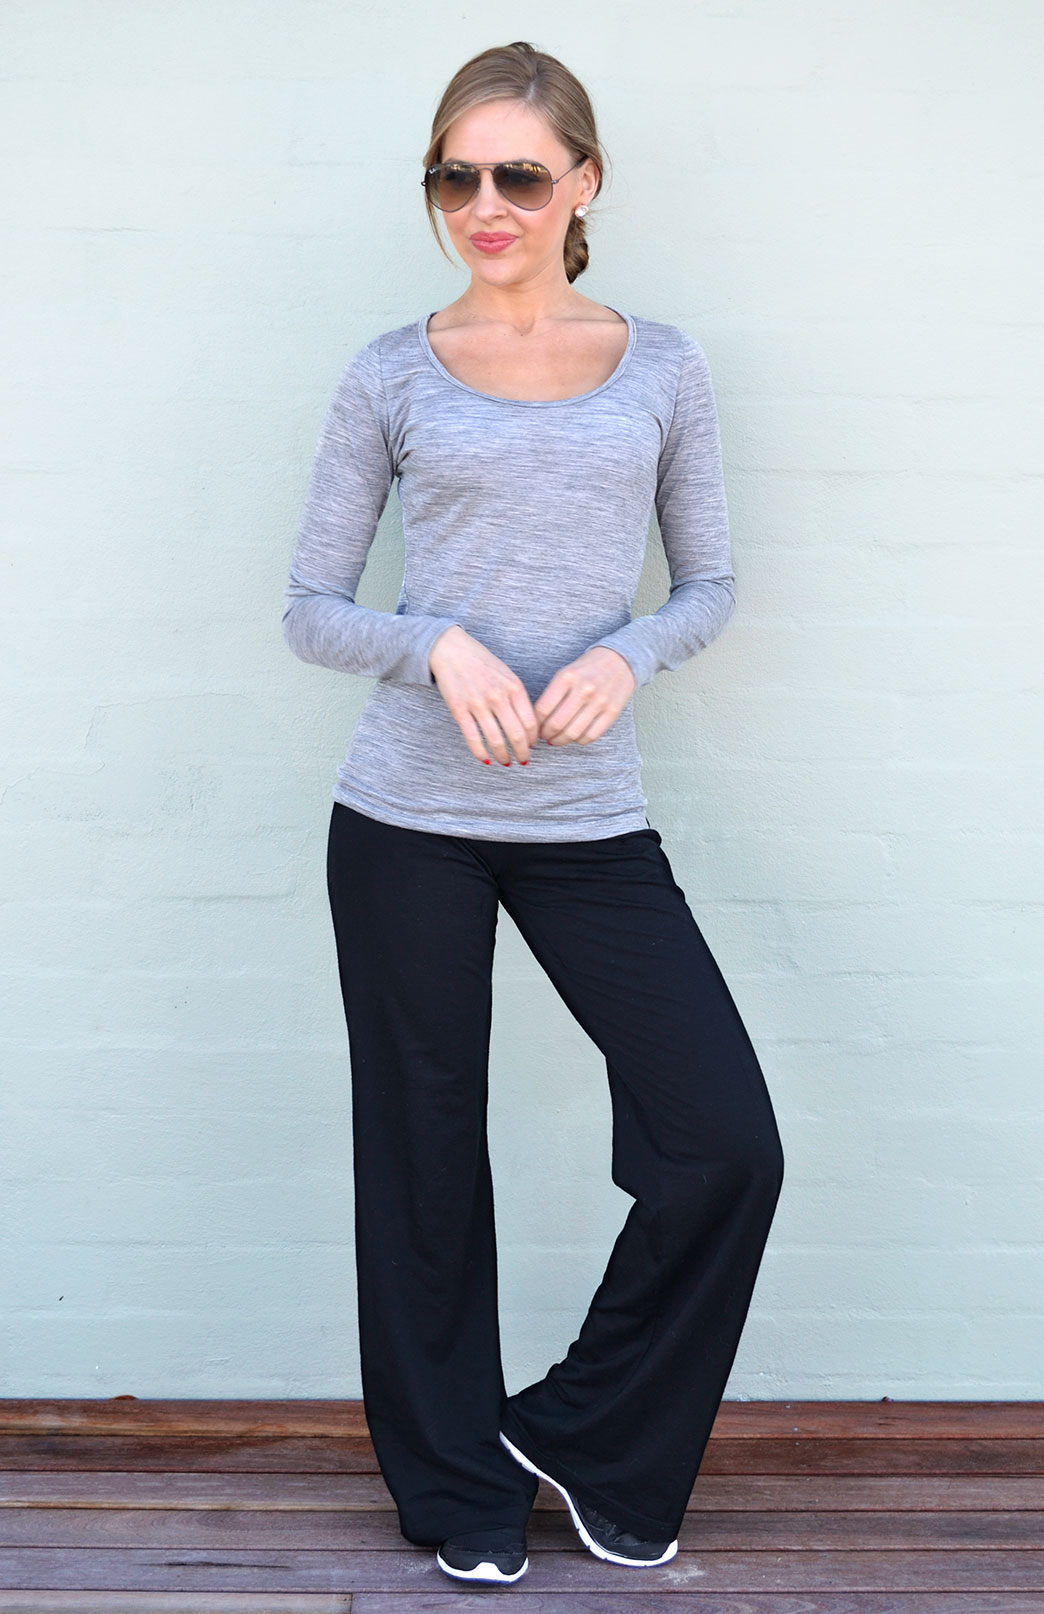 Yoga Pants - Fleece (~270g) - Women's Black Wool Fleece Lined Yoga Pants with wide waistband - Smitten Merino Tasmania Australia